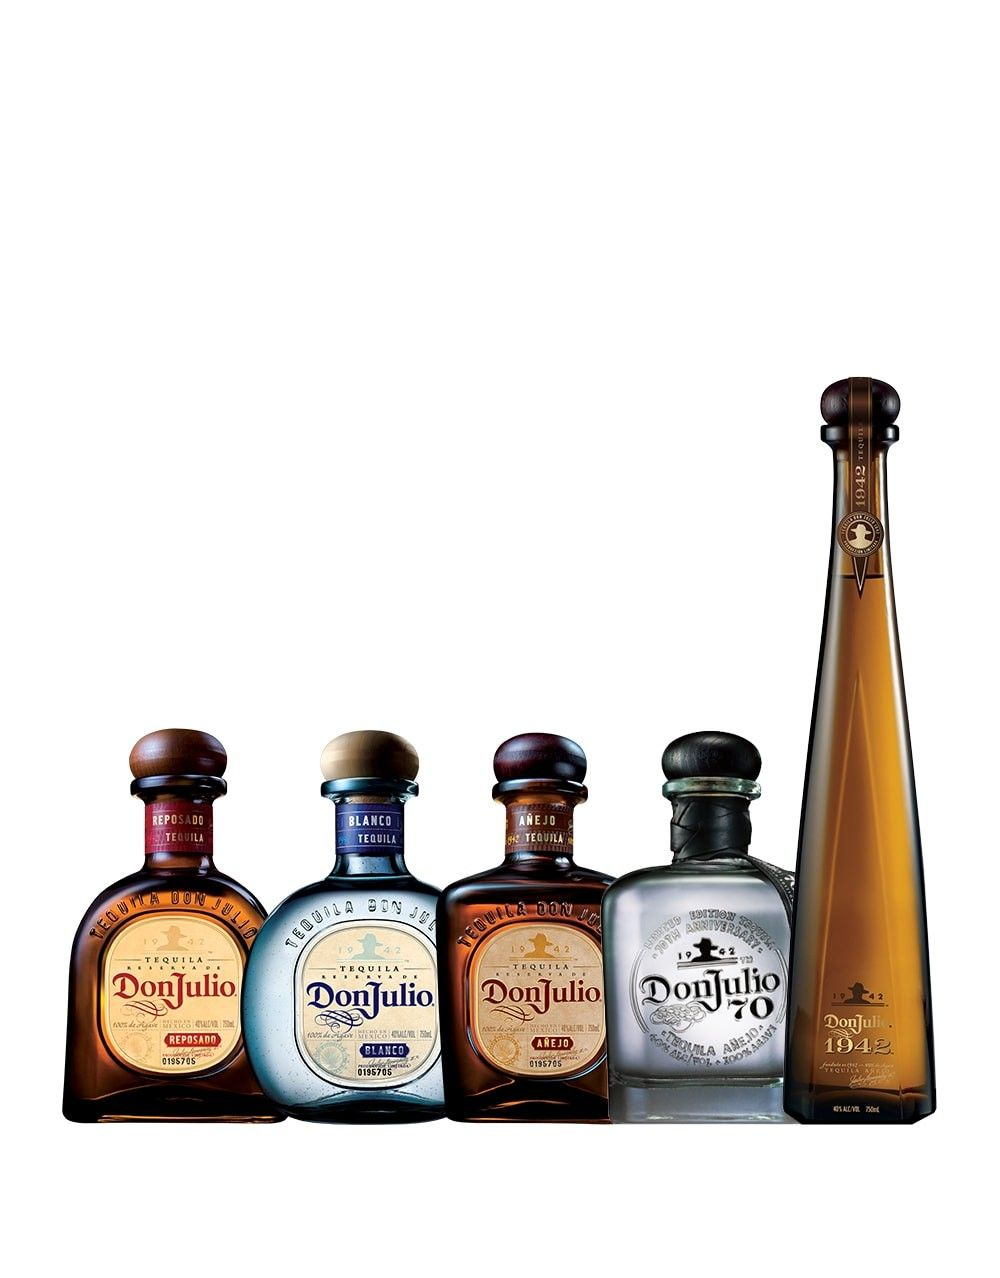 Don Julio Collection 5 Bottles Buy Online Or Send As A